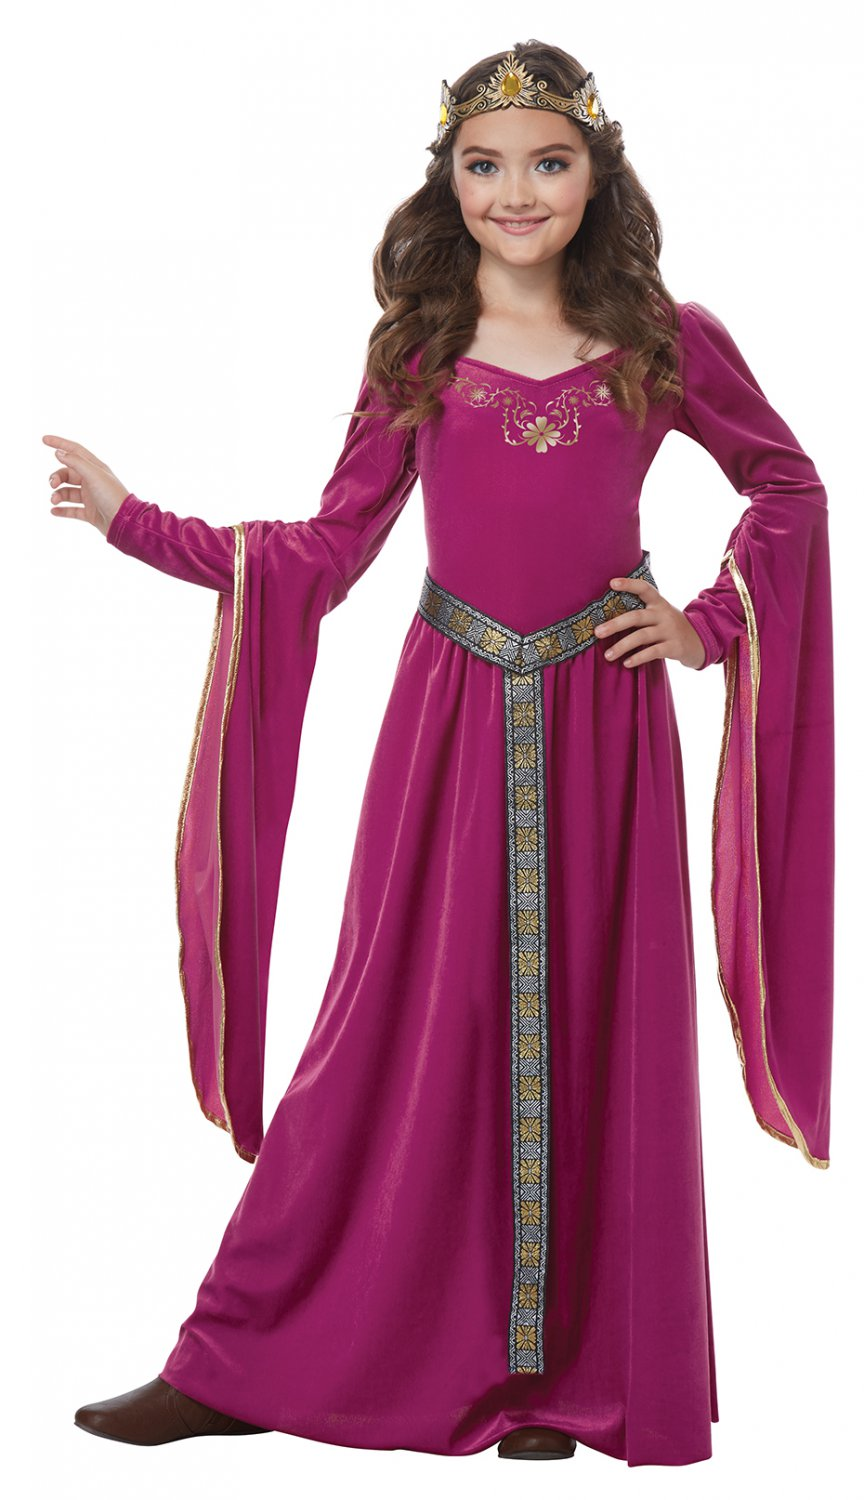 Size: X-Large #00572 Medieval Princess Renaissance Game of Thrones Girl Child Costume